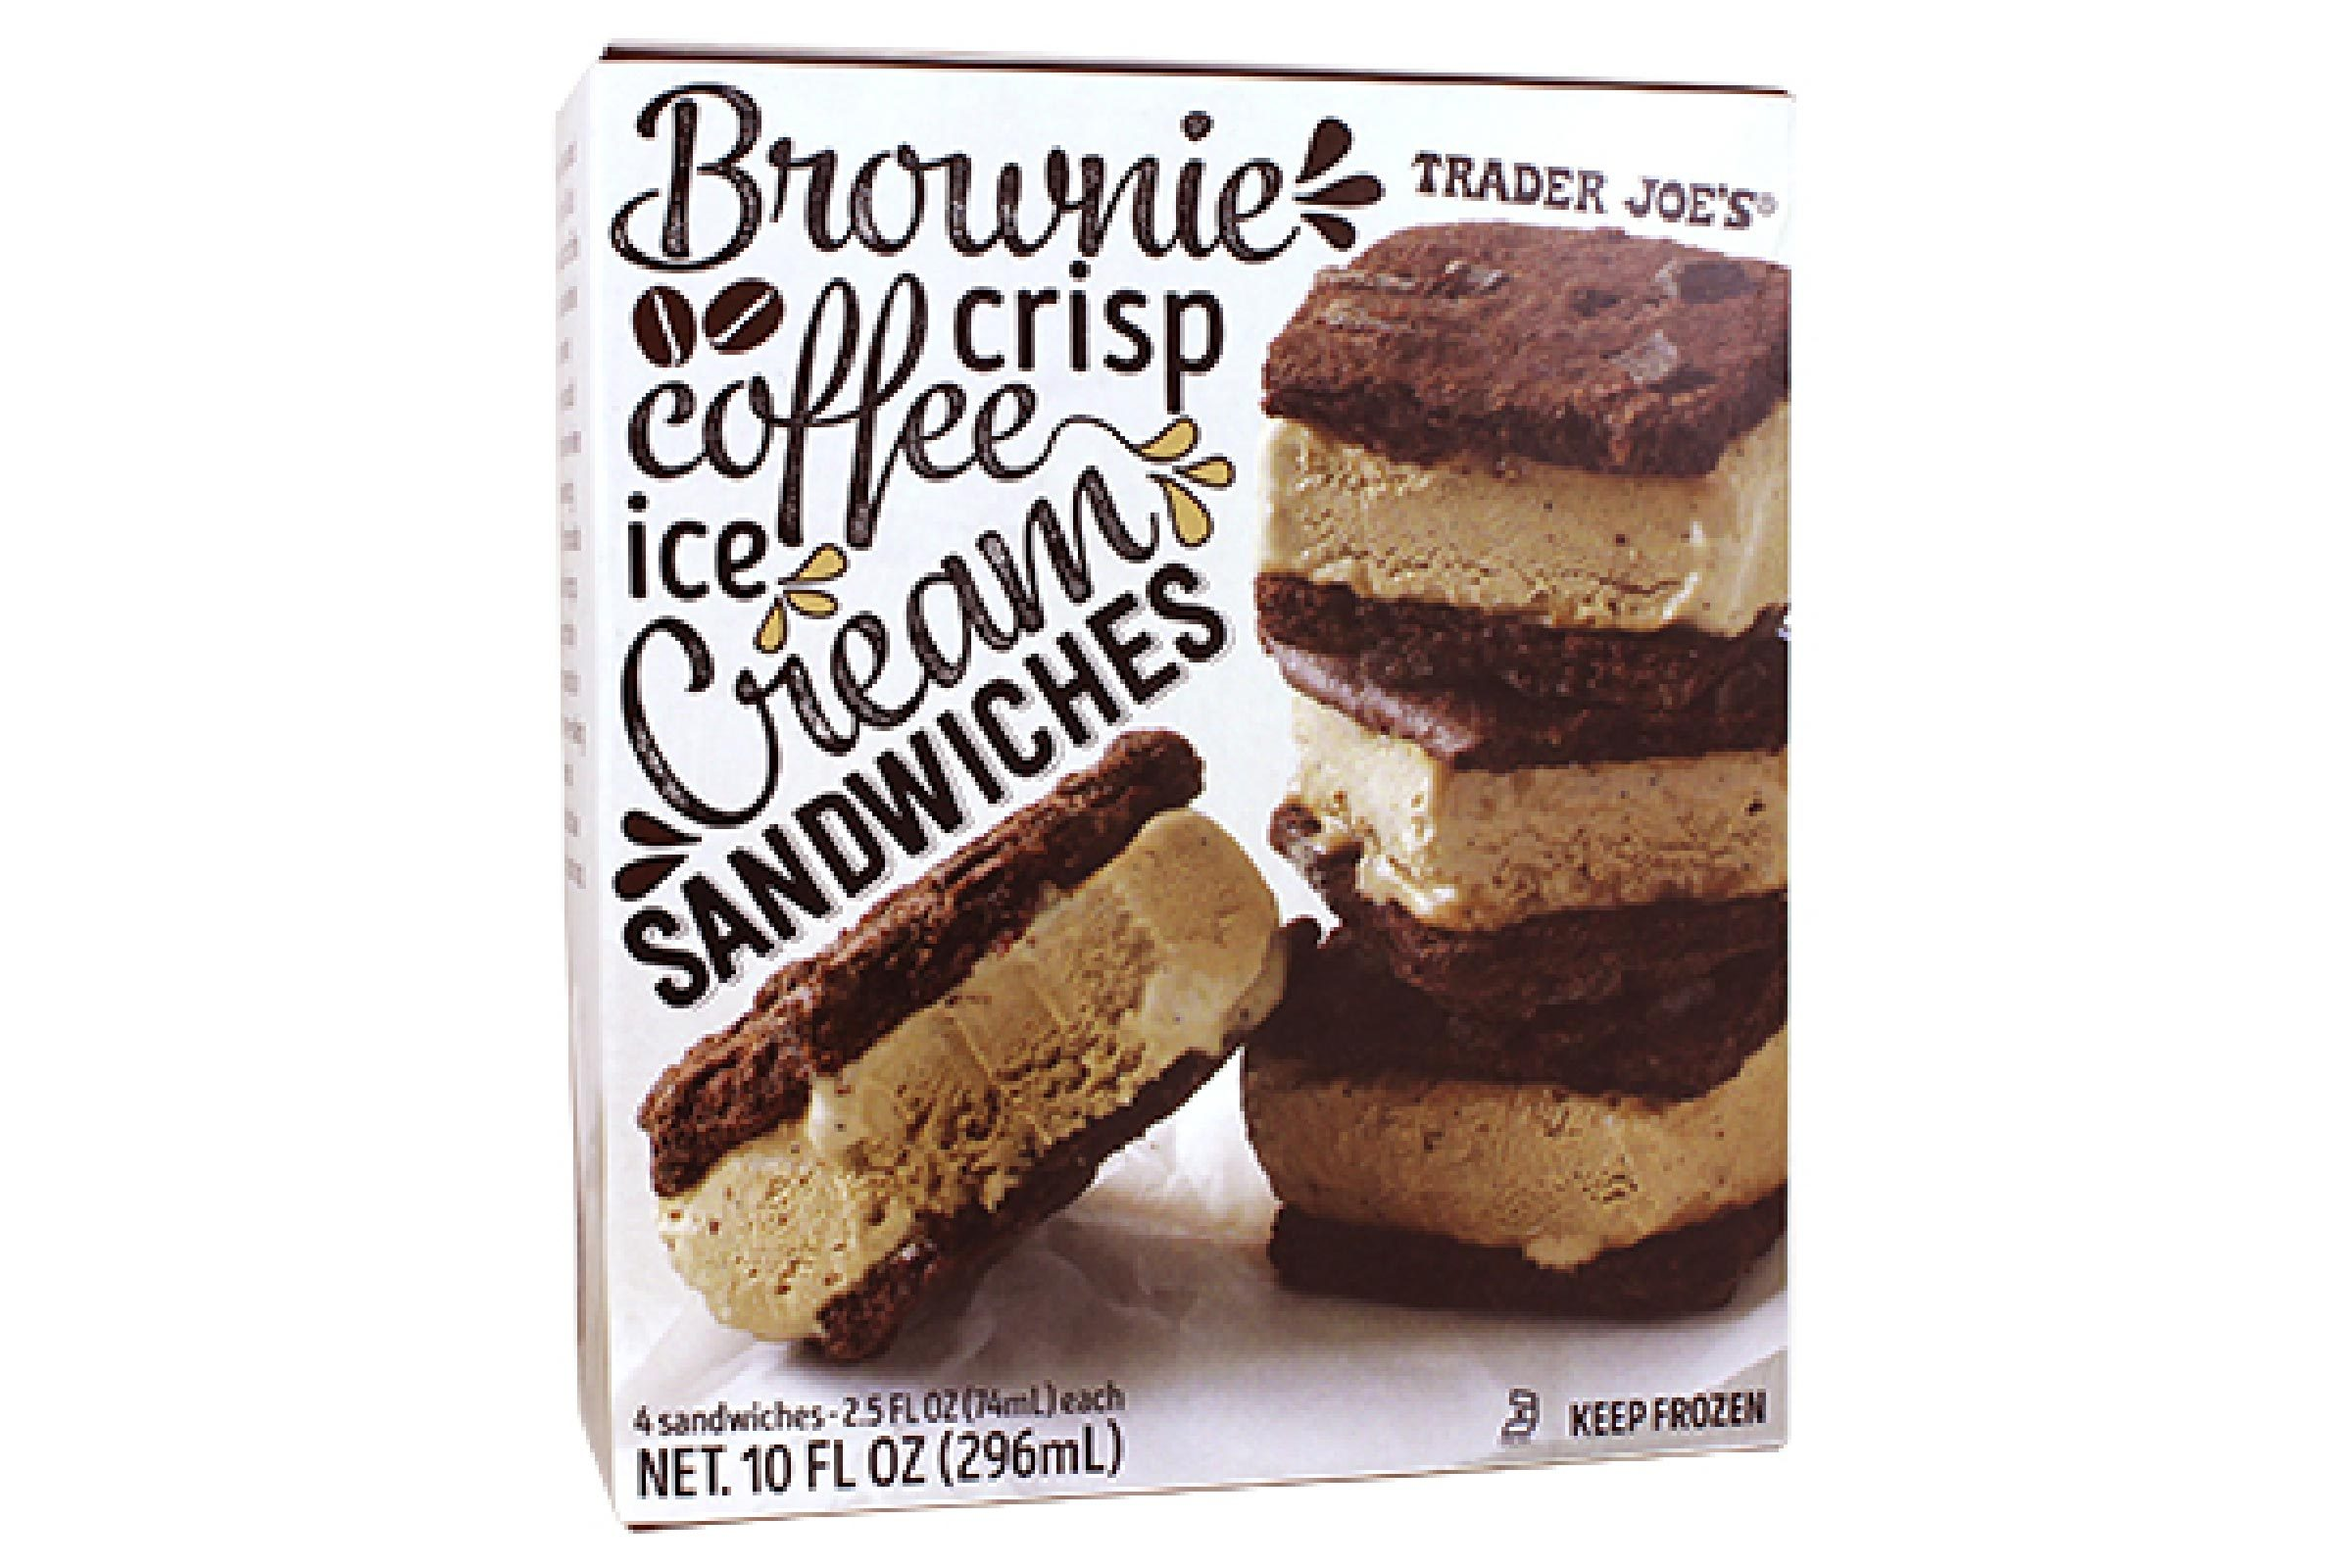 Brownie Crisp Coffee Ice Cream Sandwiches